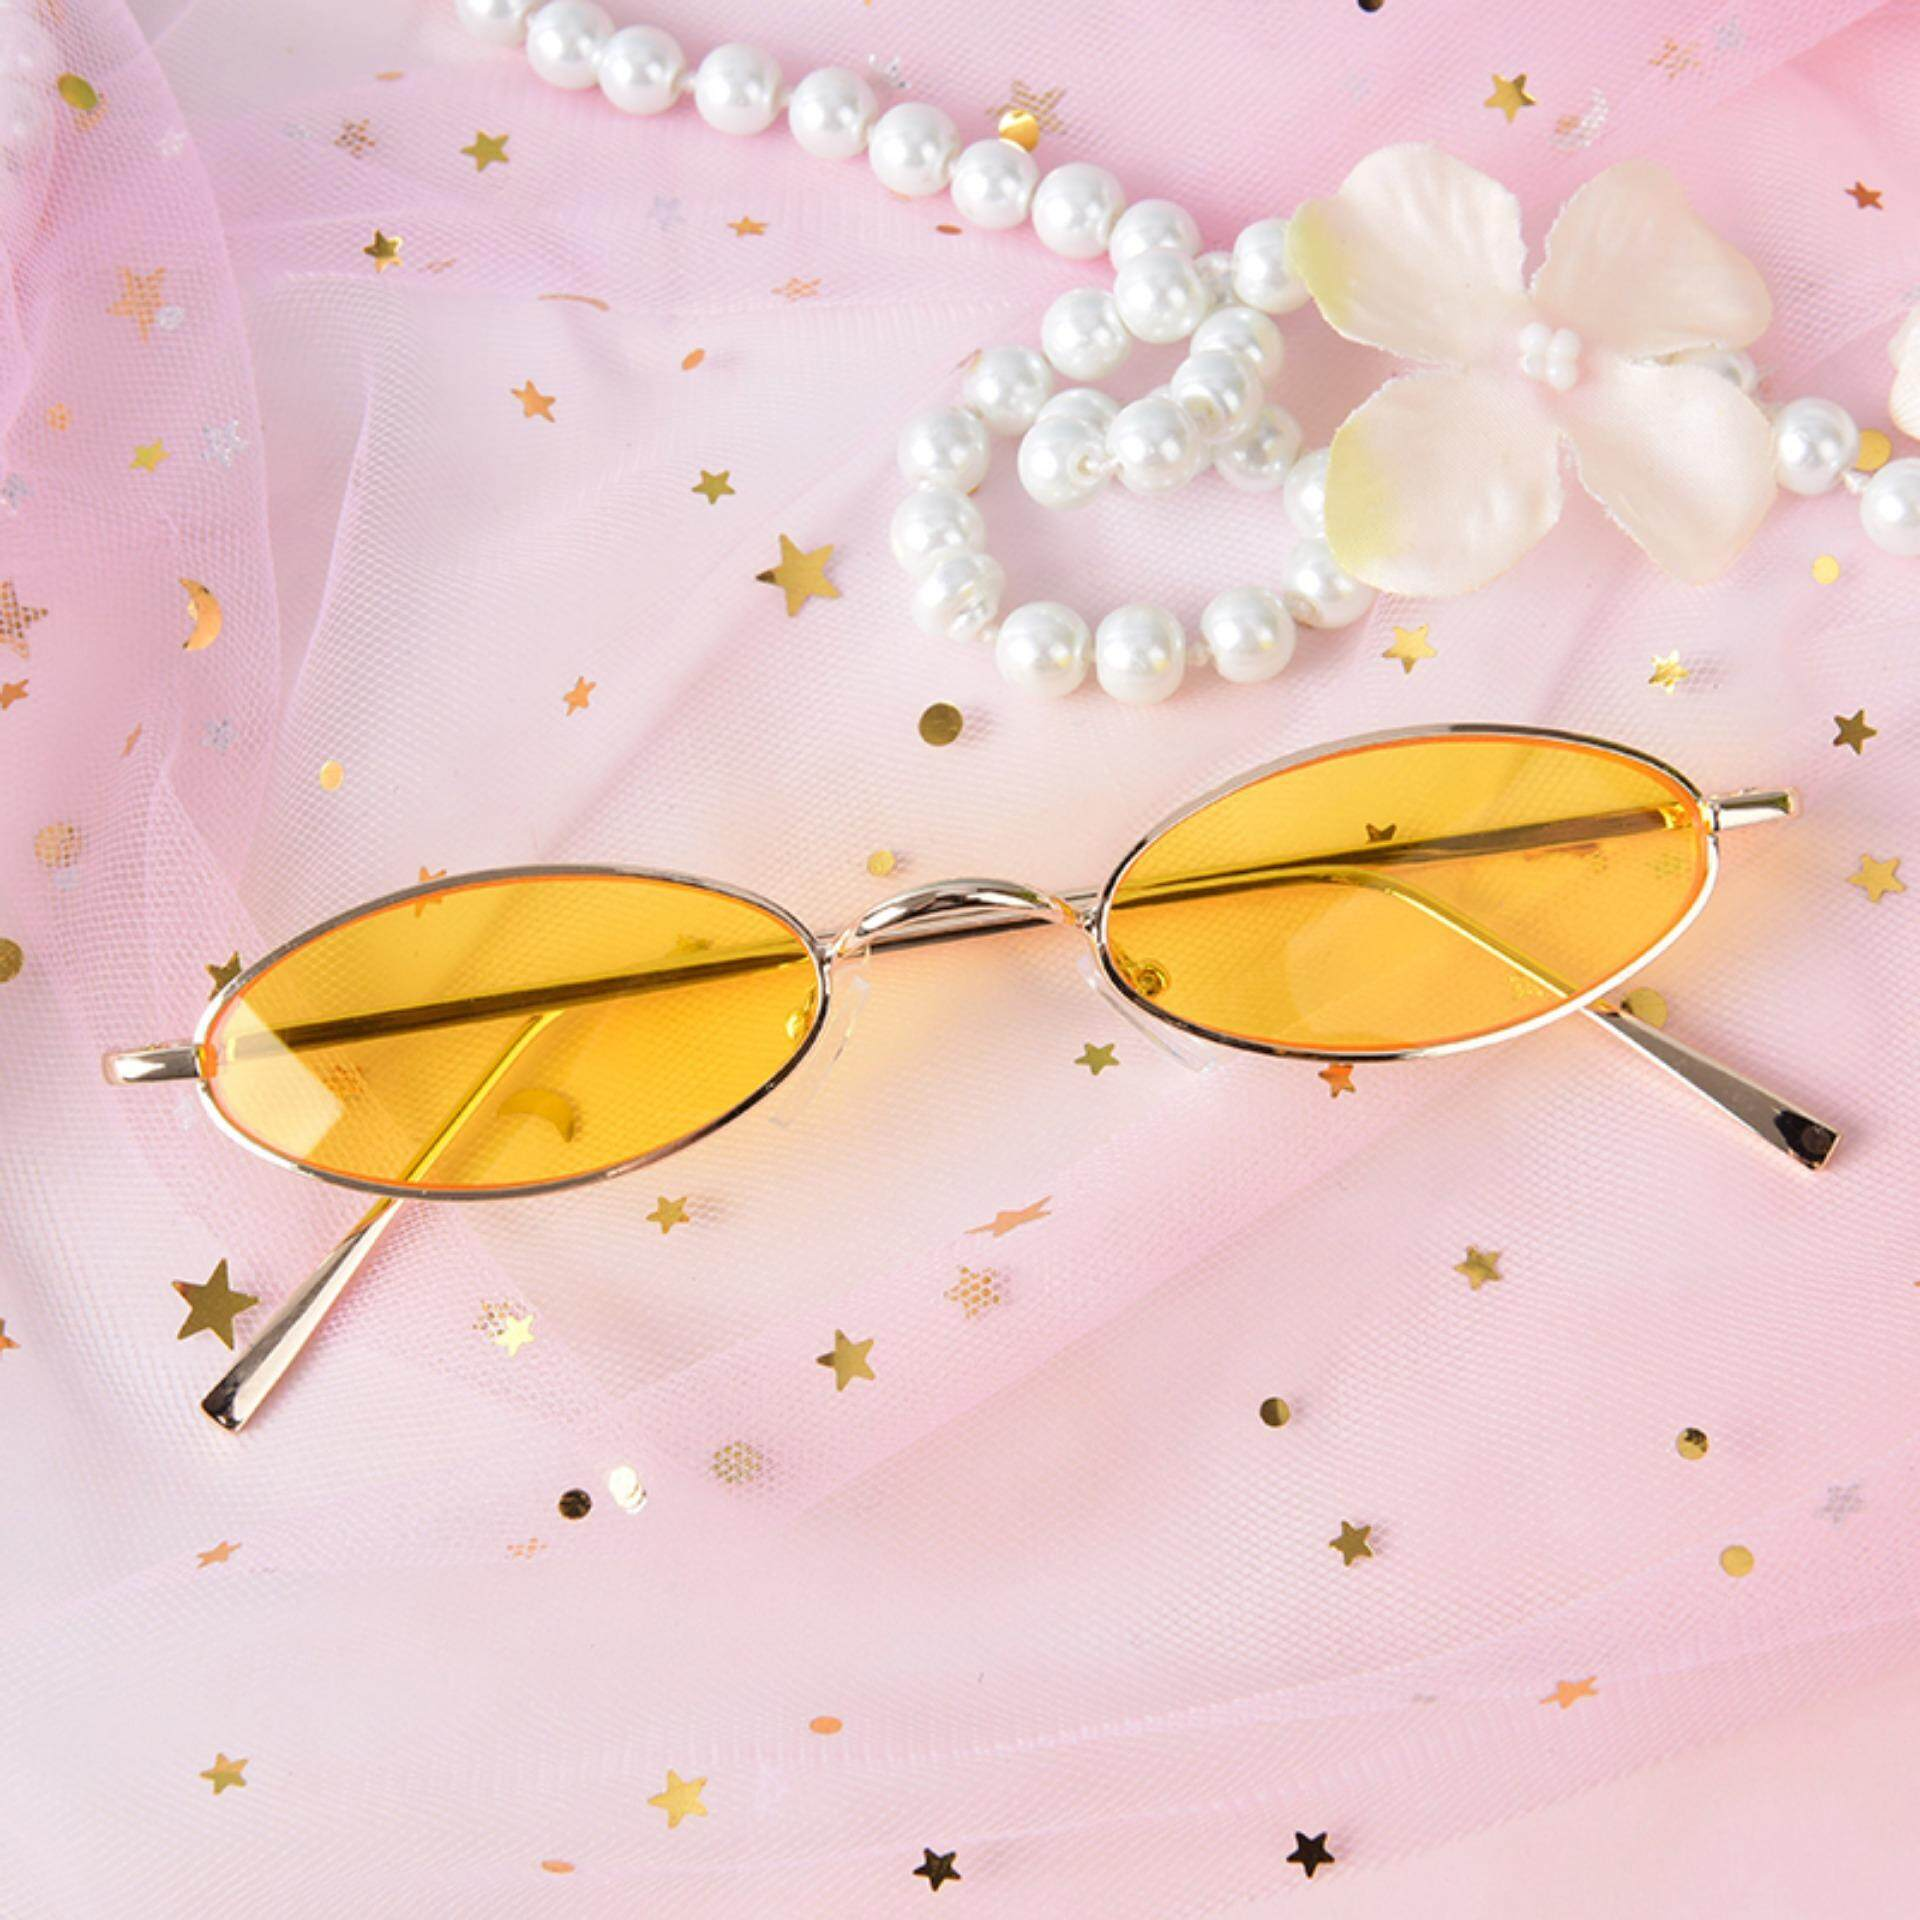 a7837ba80b3 Vintage Small Oval Metal Frame Sunglasses Women S Retro Shades Trendy  Glasses Gold   Yellow